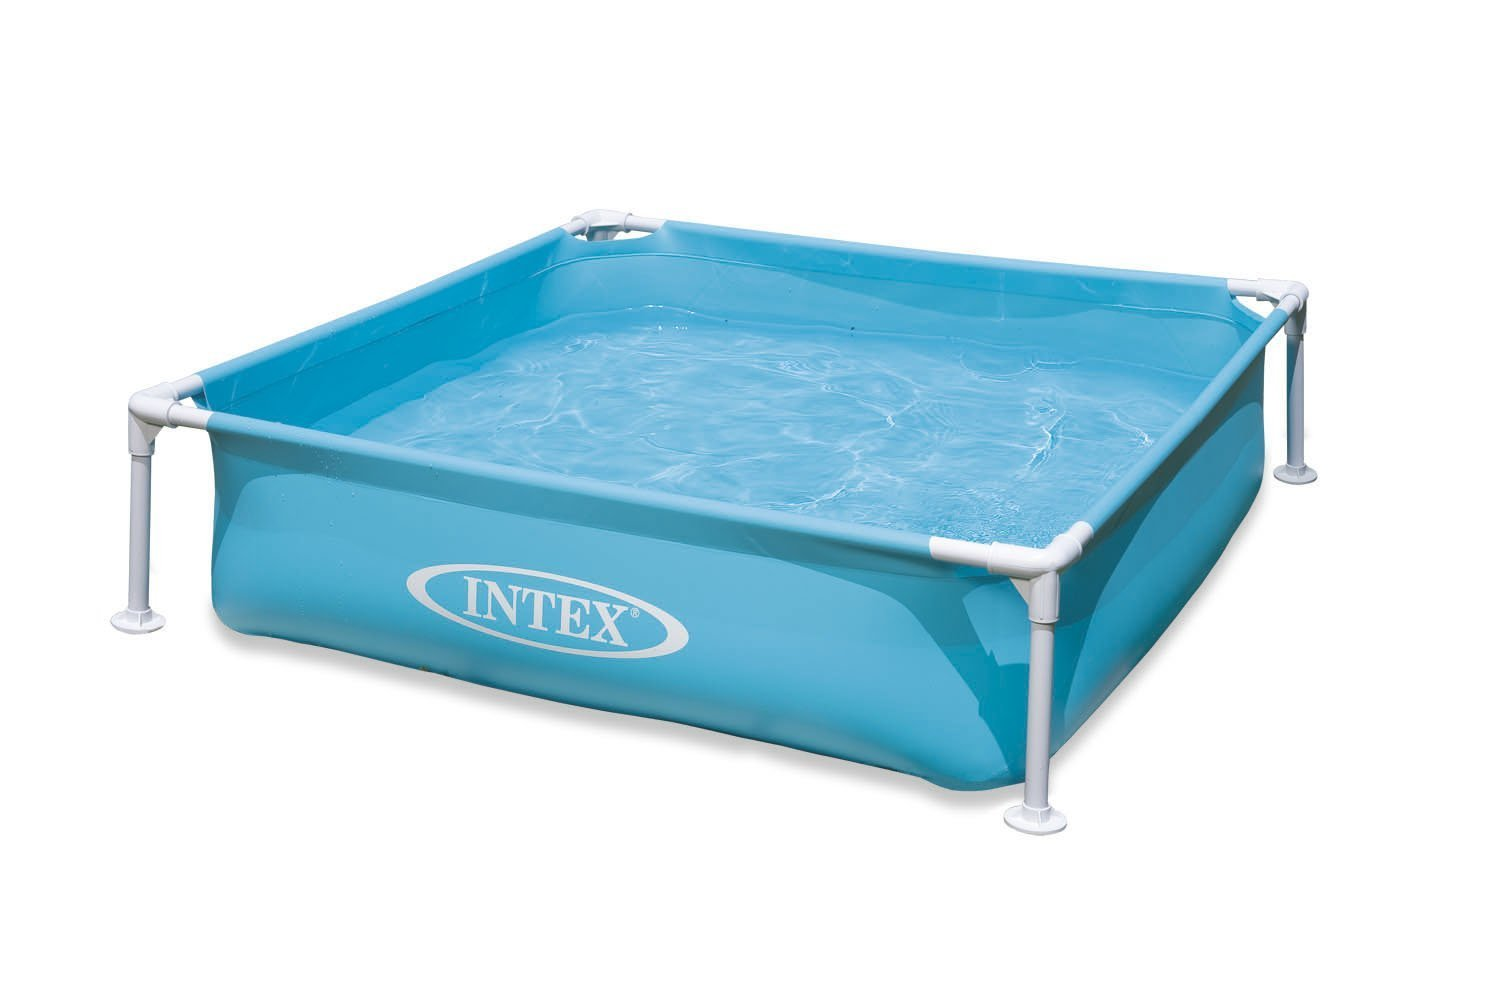 Square Above Ground Pool intex mini frame pool review | best above ground pools